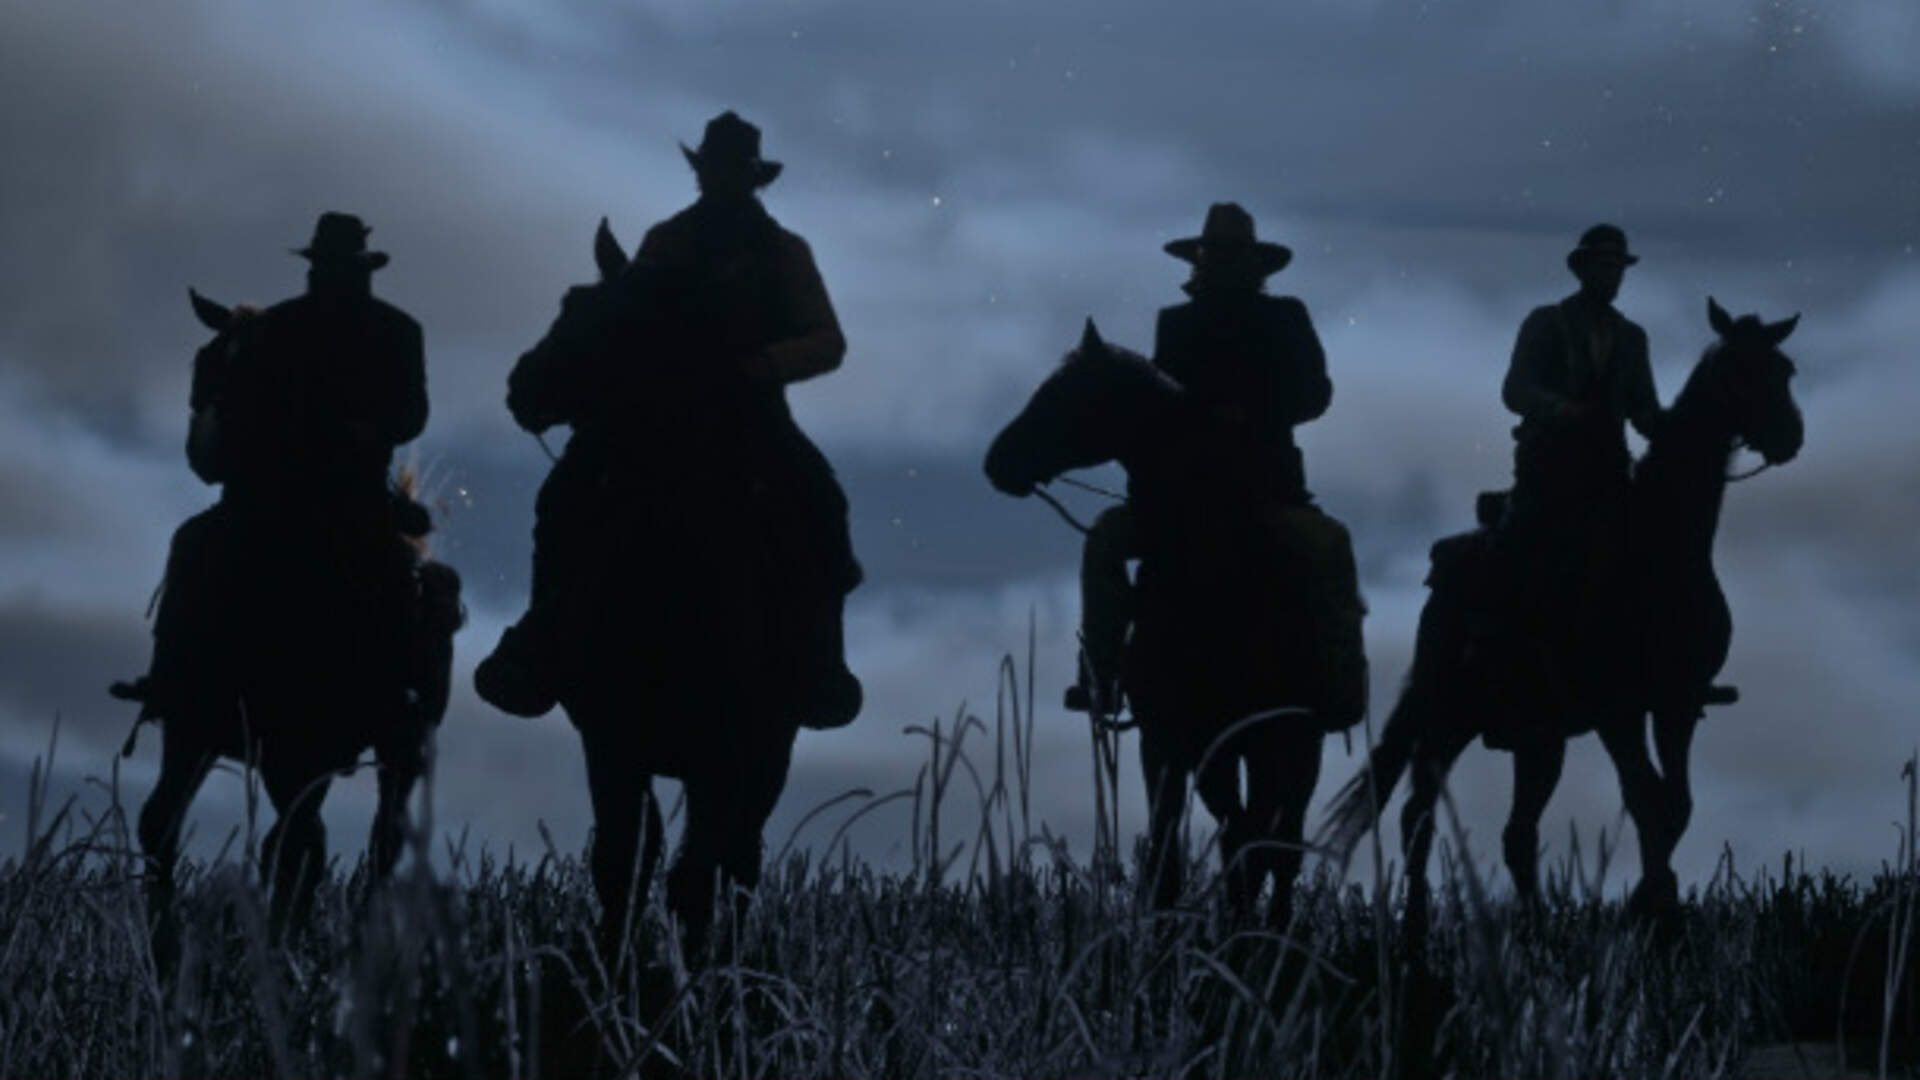 Developers Share Their Crunch Stories in the Wake of Today's Red Dead Redemption 2 Story